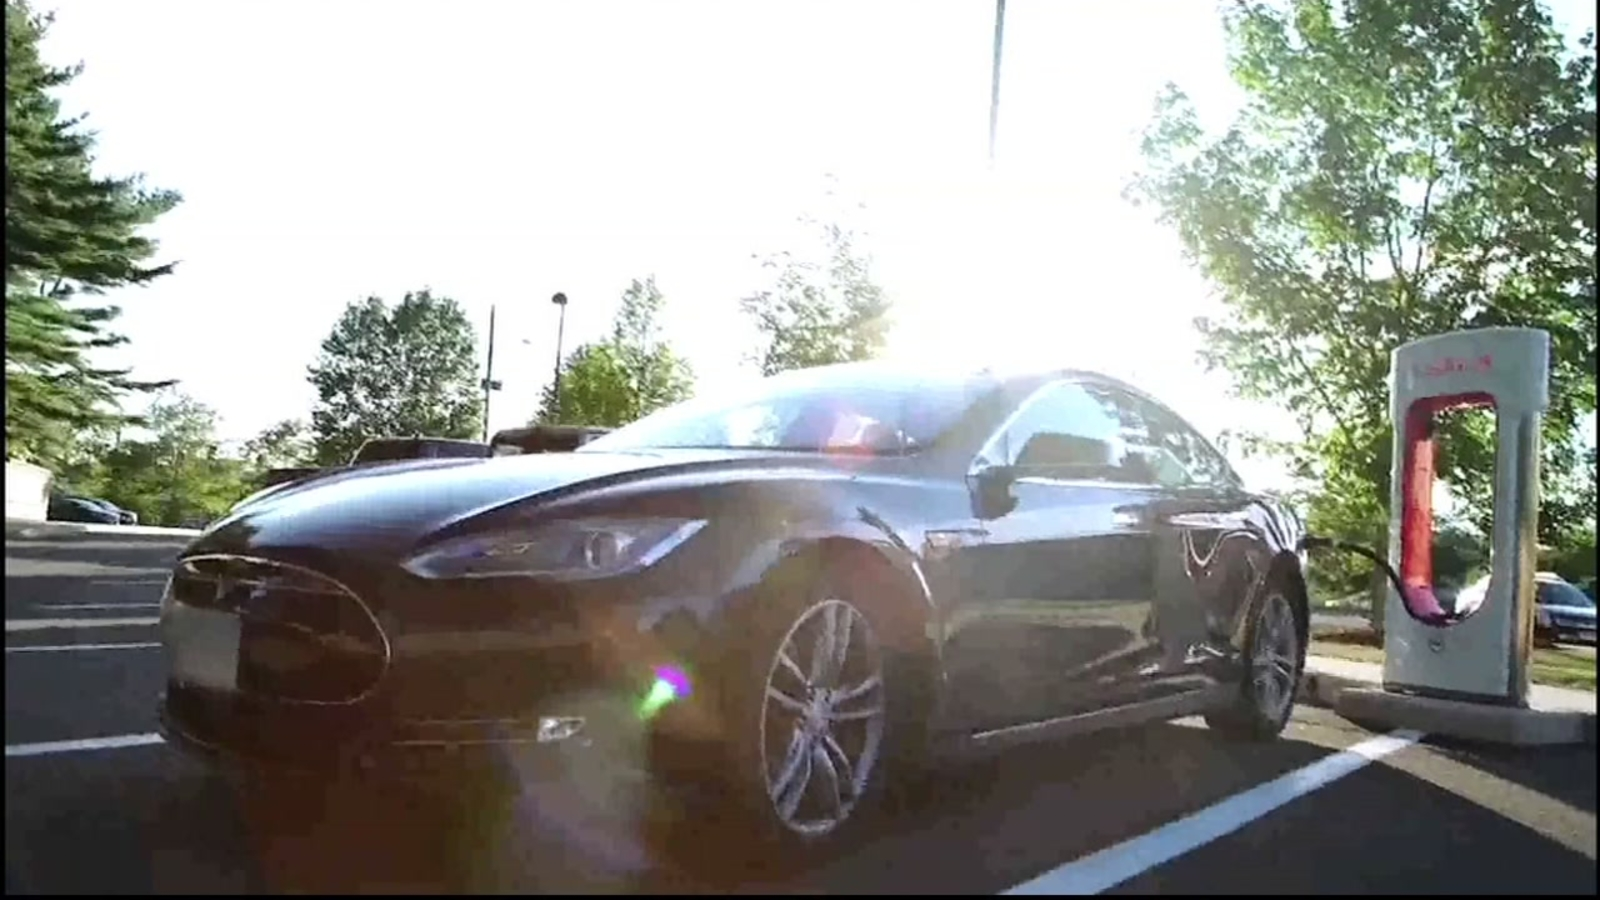 Consumer Reports takes a closer look at electric cars